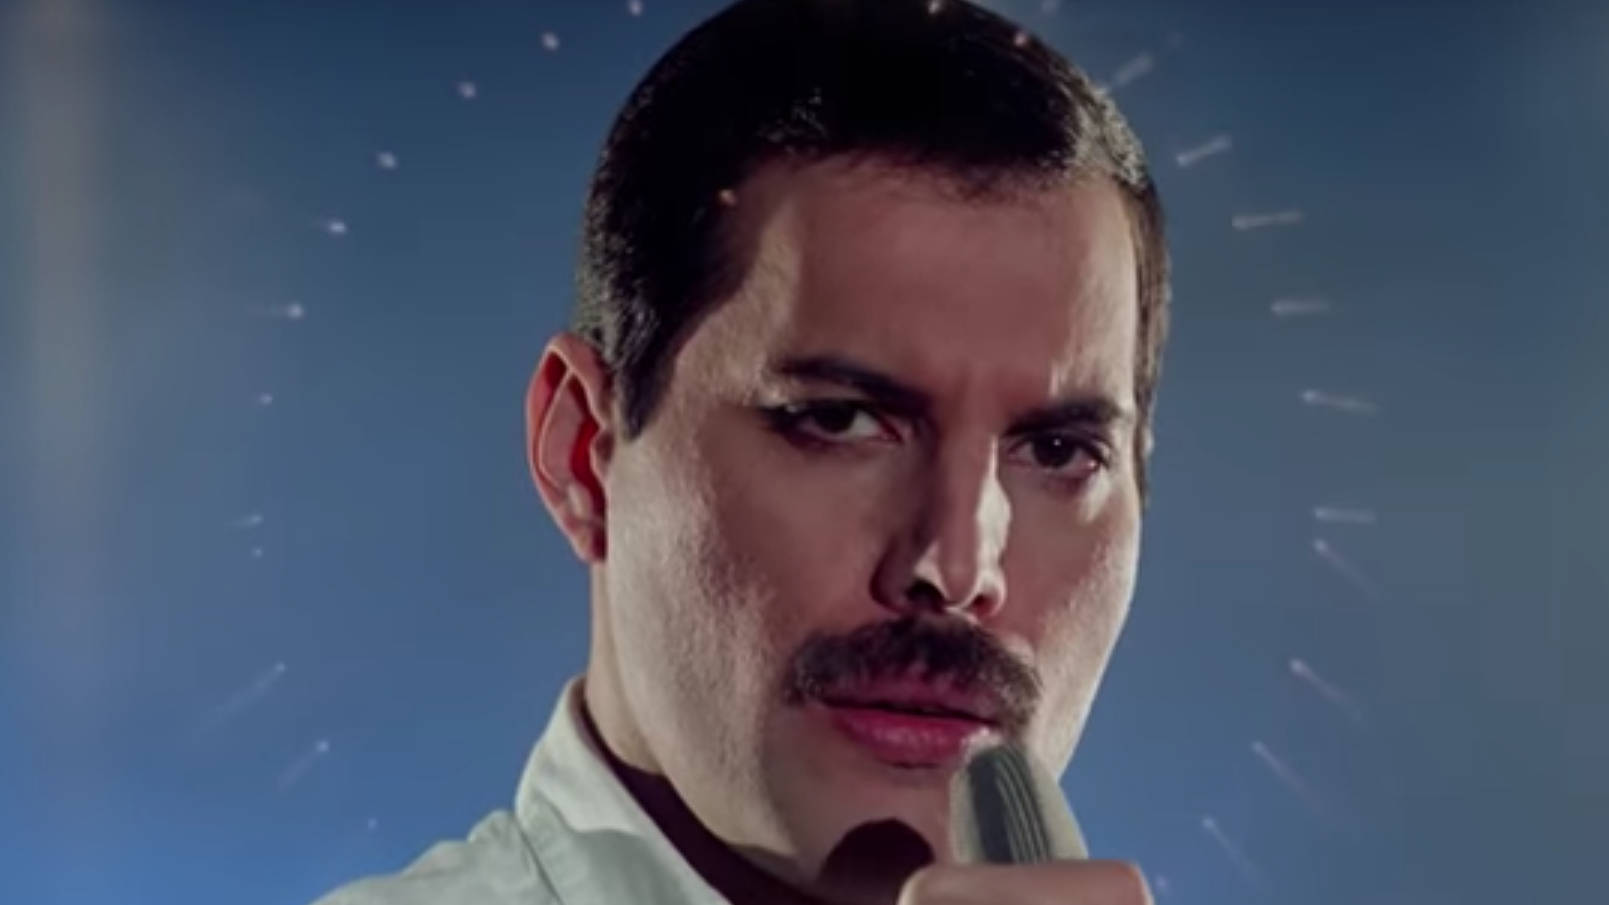 Freddie Mercury: Video for lost song 'Time Waits for No One